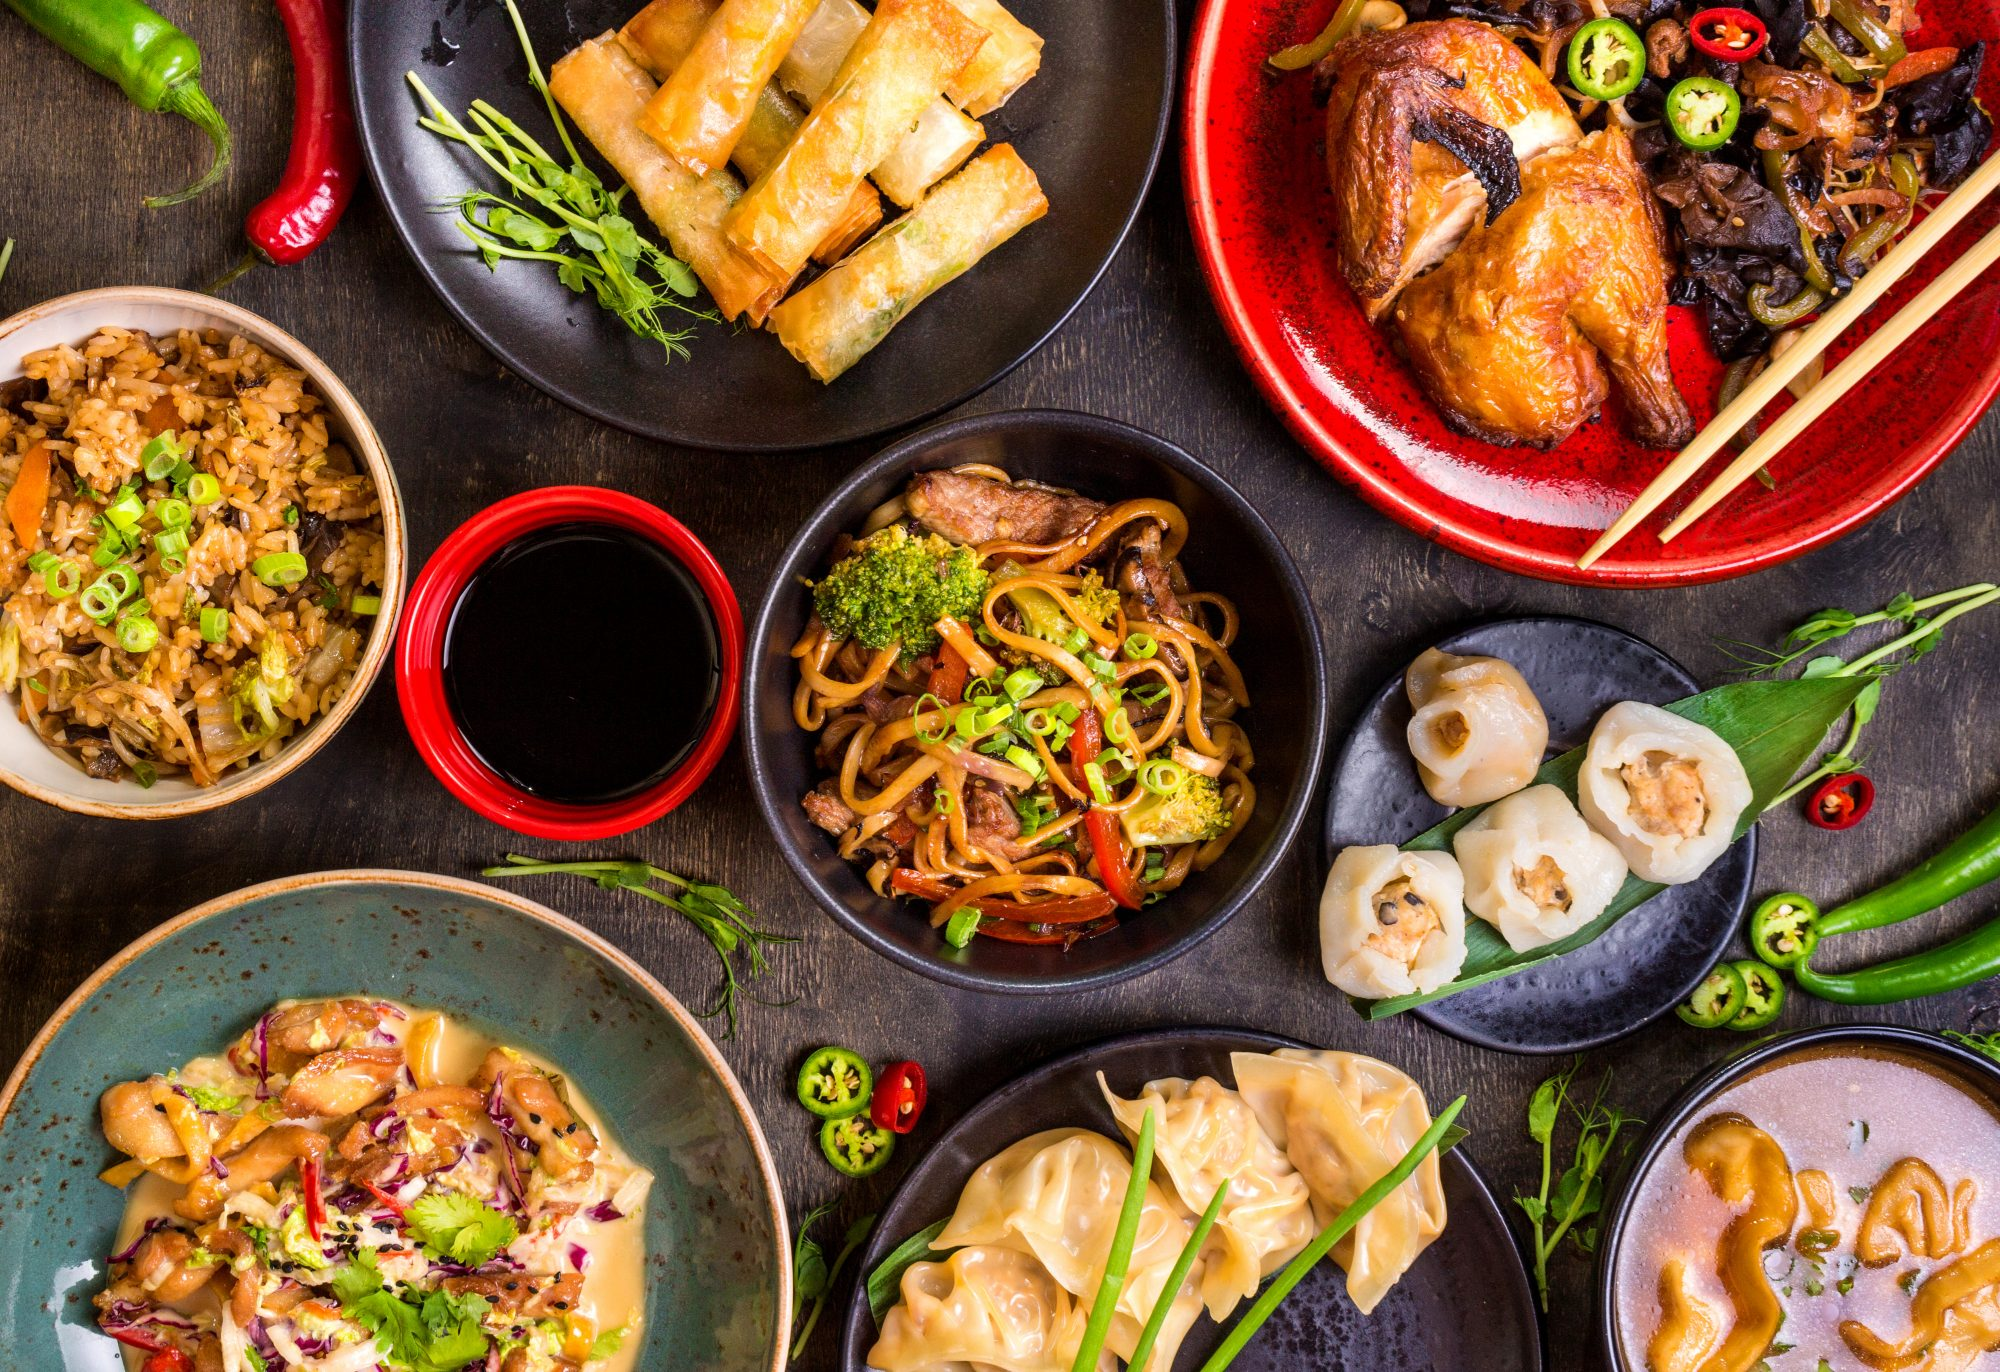 getty-chinese-food-image